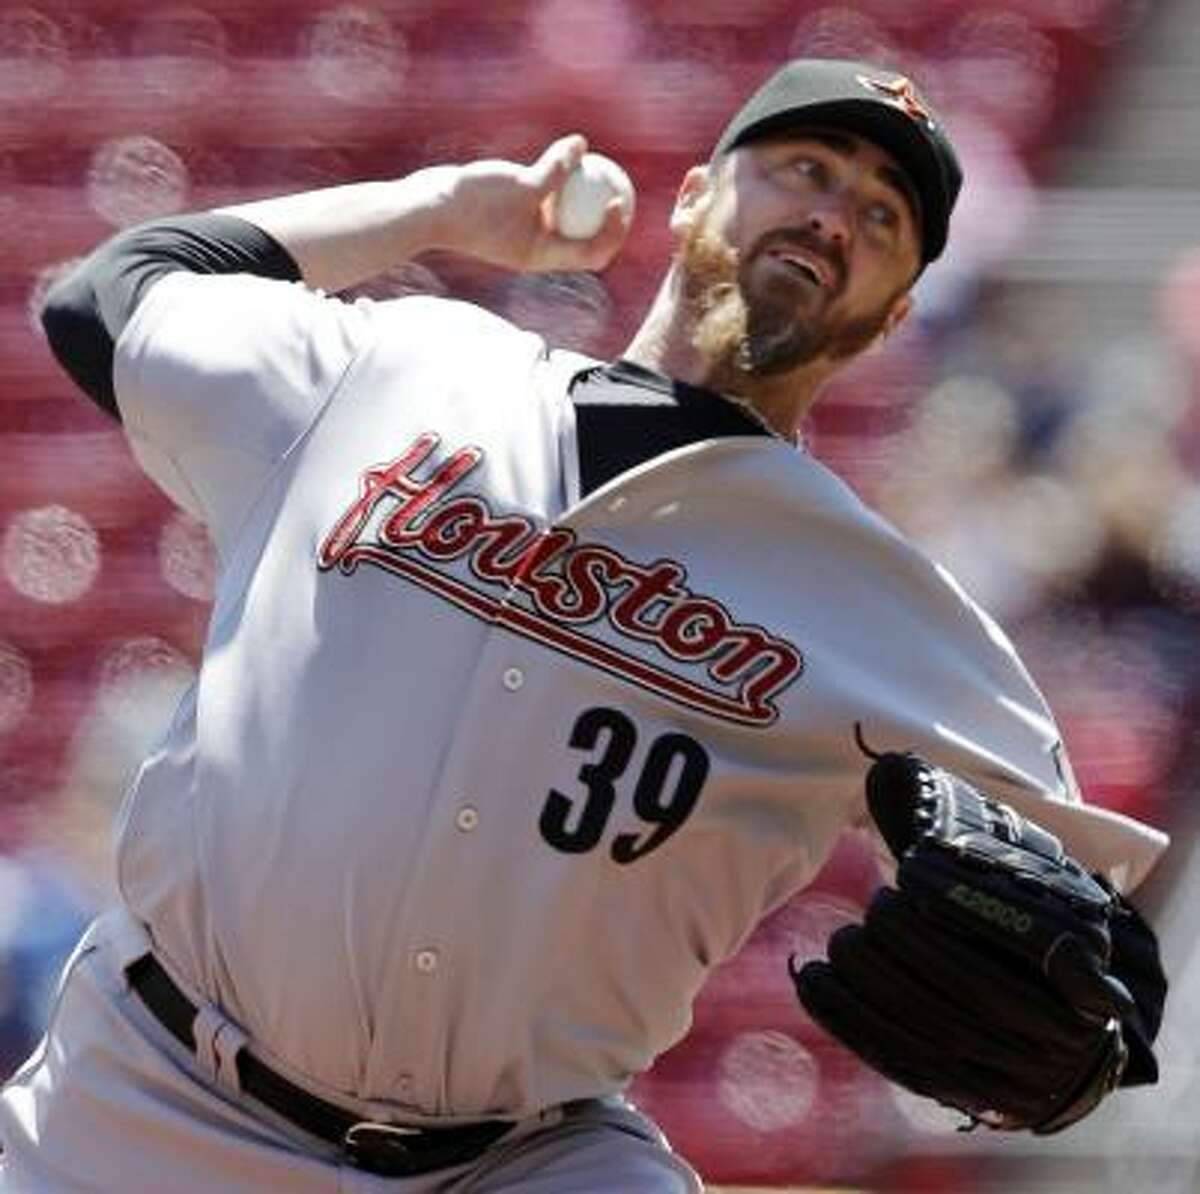 Astros starting pitcher Brett Myers didn't have his bestouting, giving up nine hits and six runs in 5 2/3 innings.